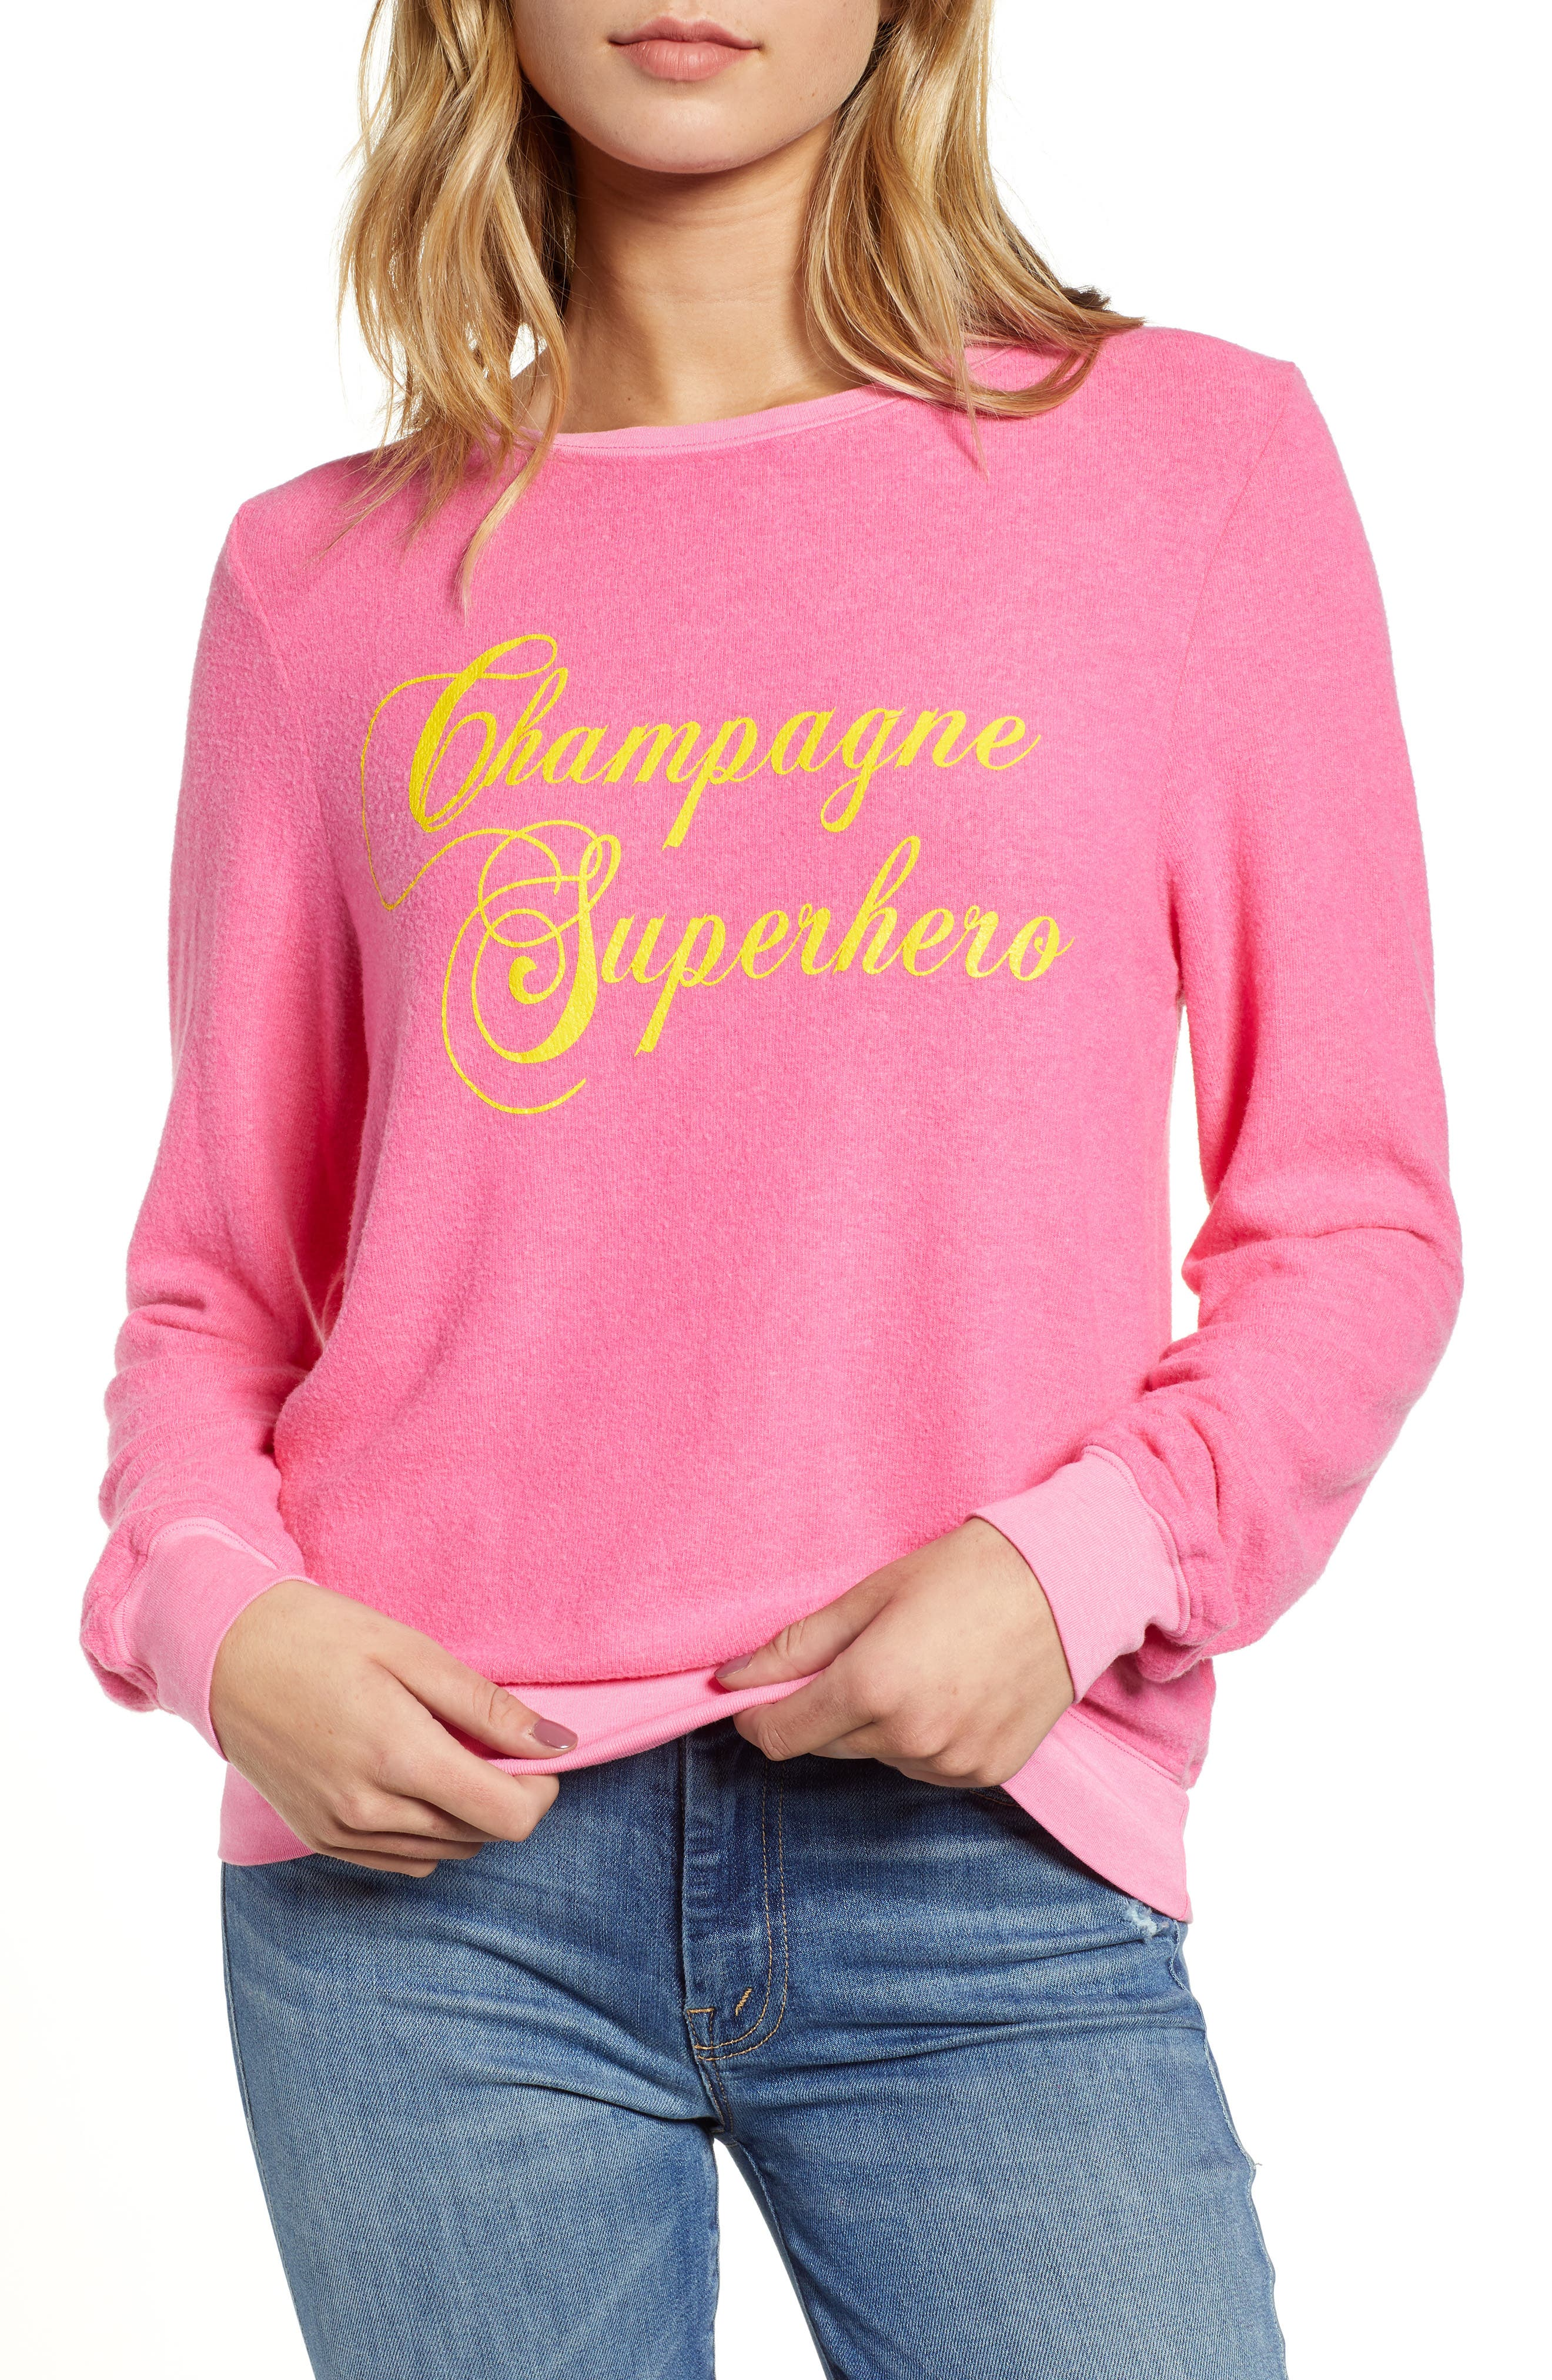 WILDFOX Baggy Beach Jumper - Champagne Superhero Pullover, Main, color, 650